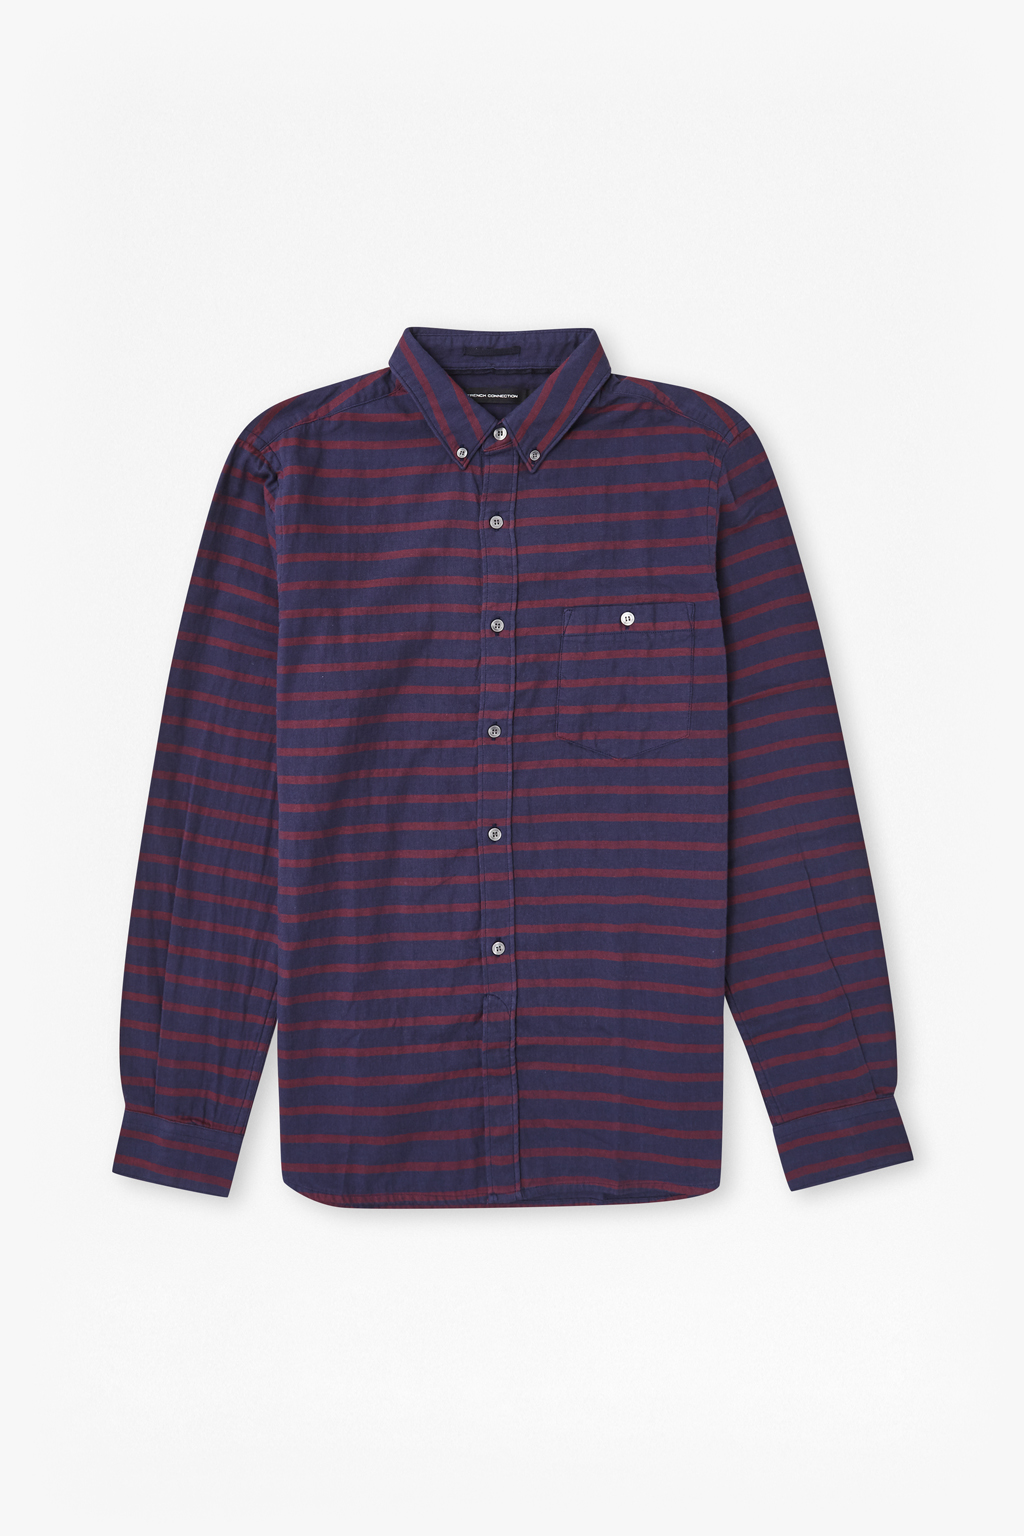 Bearcat Double Striped Shirt Collections French Connection